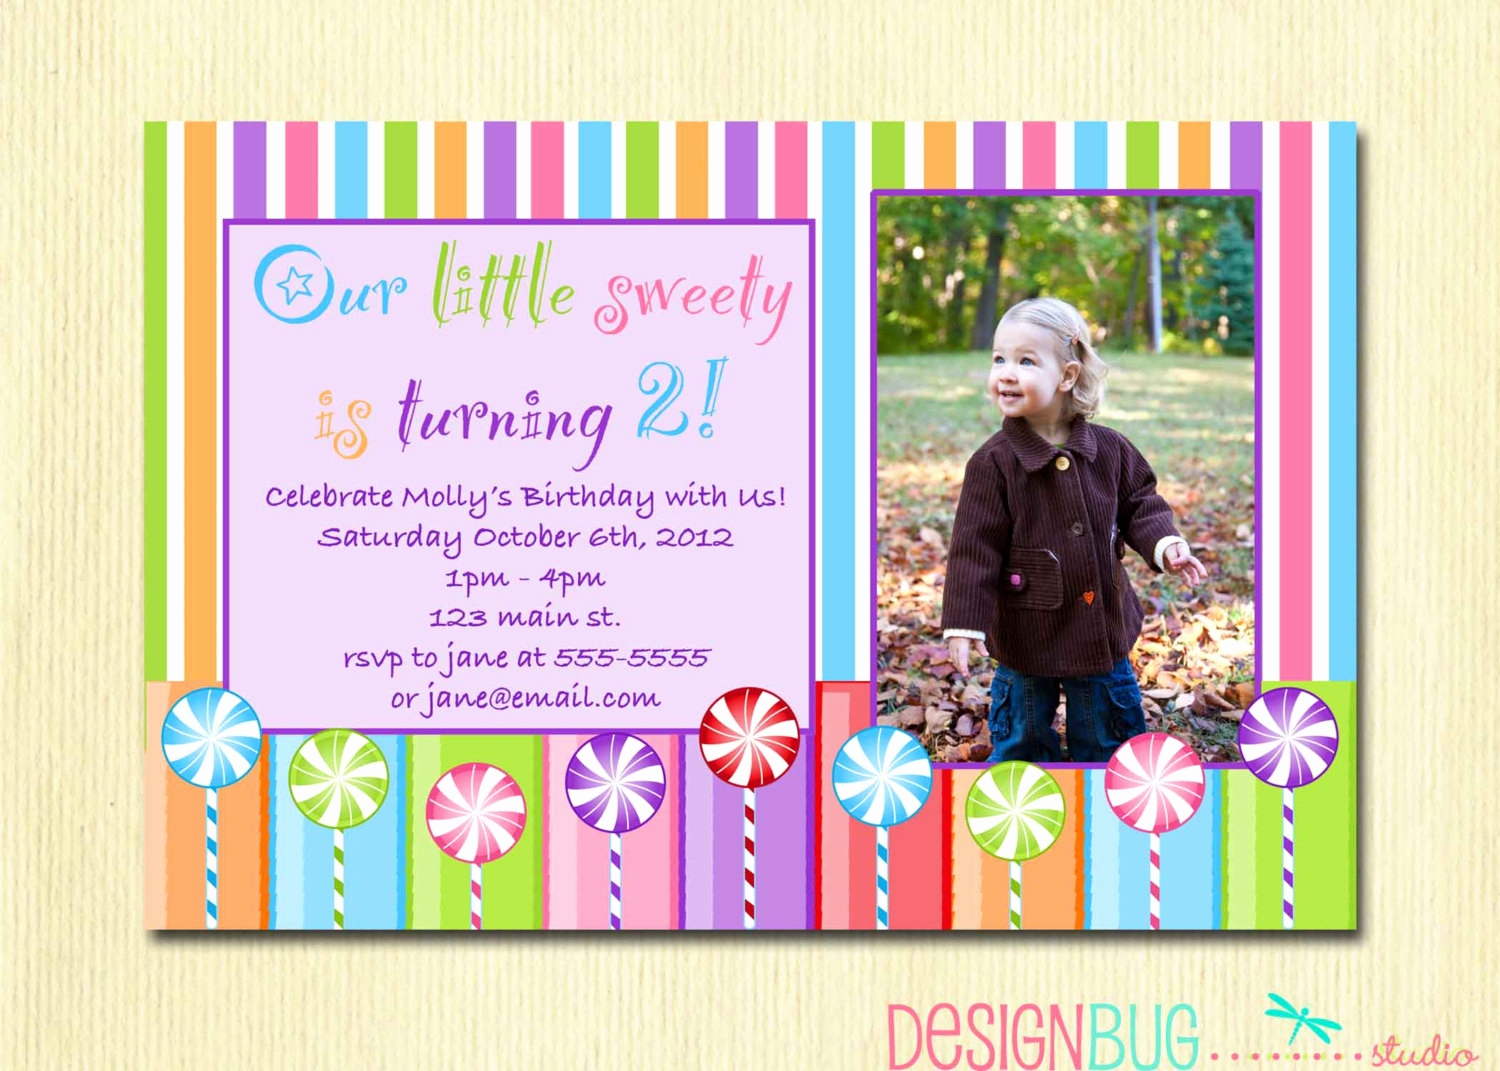 2 year old birthday card printable ; what-to-write-in-2-year-old-birthday-card-fresh-girls-lollipop-birthday-party-invitation-diy-printable-candy-of-what-to-write-in-2-year-old-birthday-card